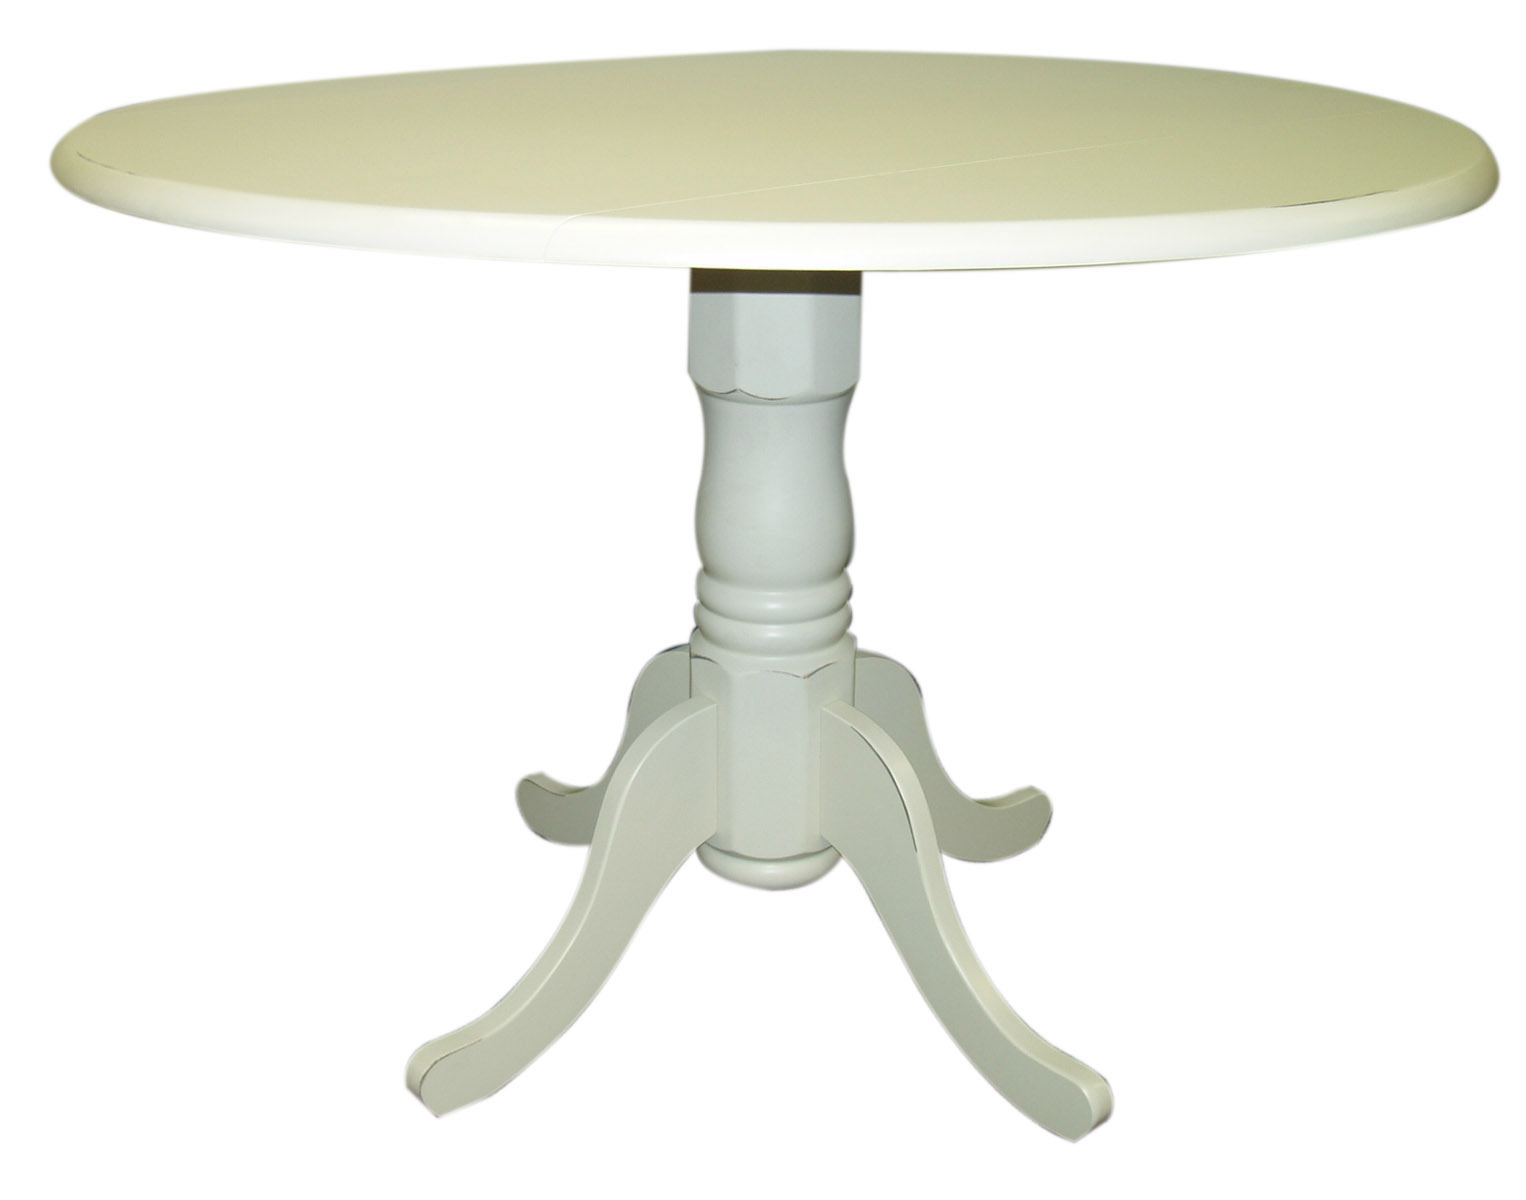 Furniture dining room furniture leaf table 42 inches for 42 inch round dining table